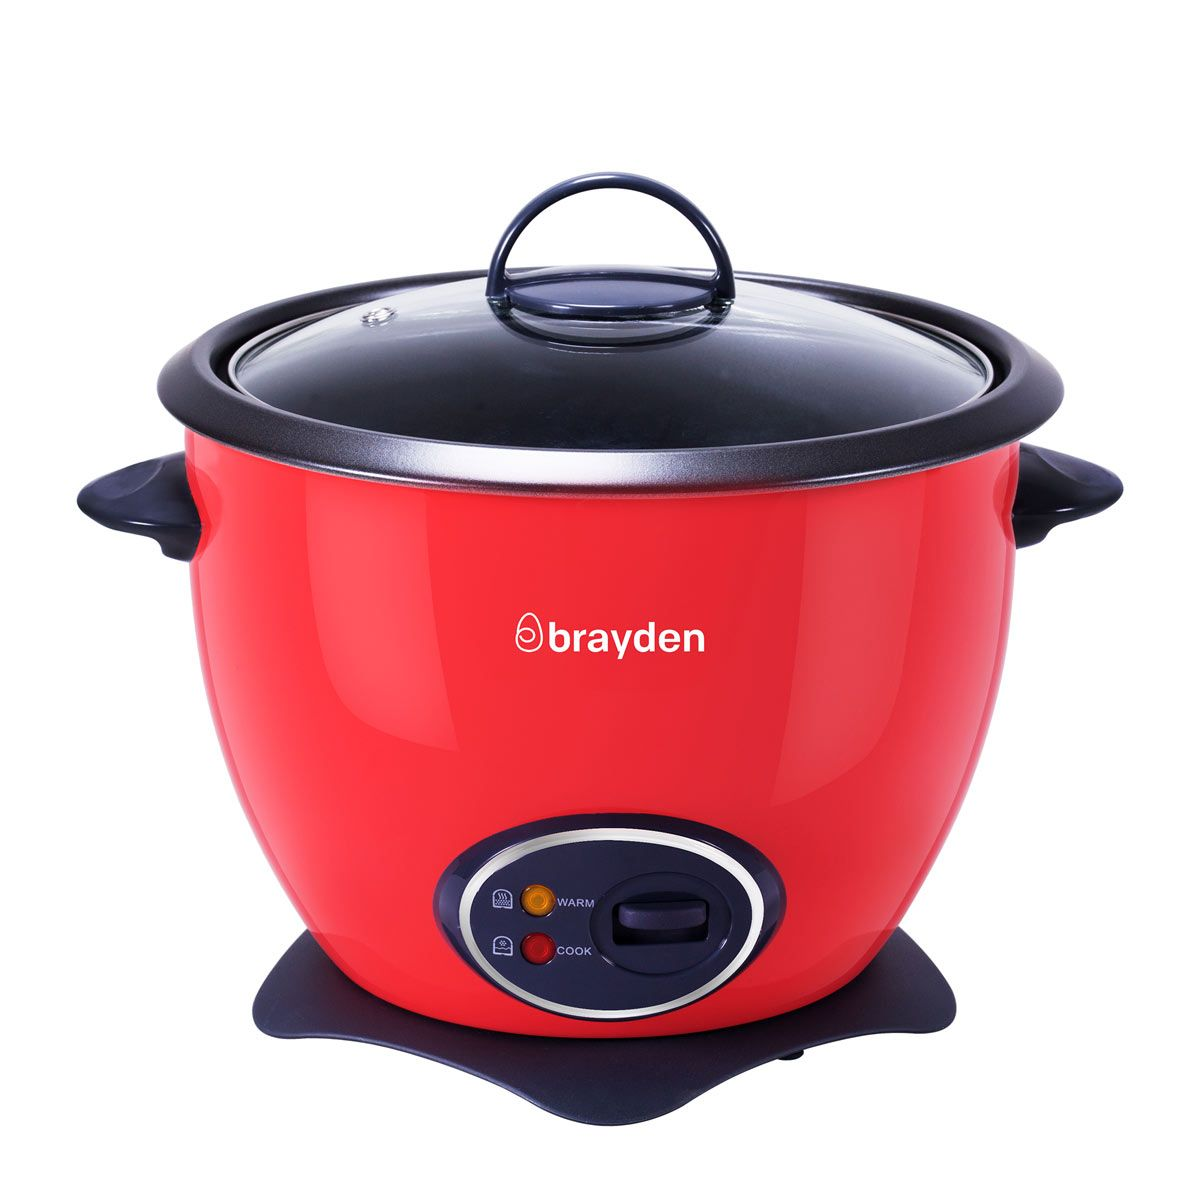 Brayden Rizo V18 - Electric Rice Cooker